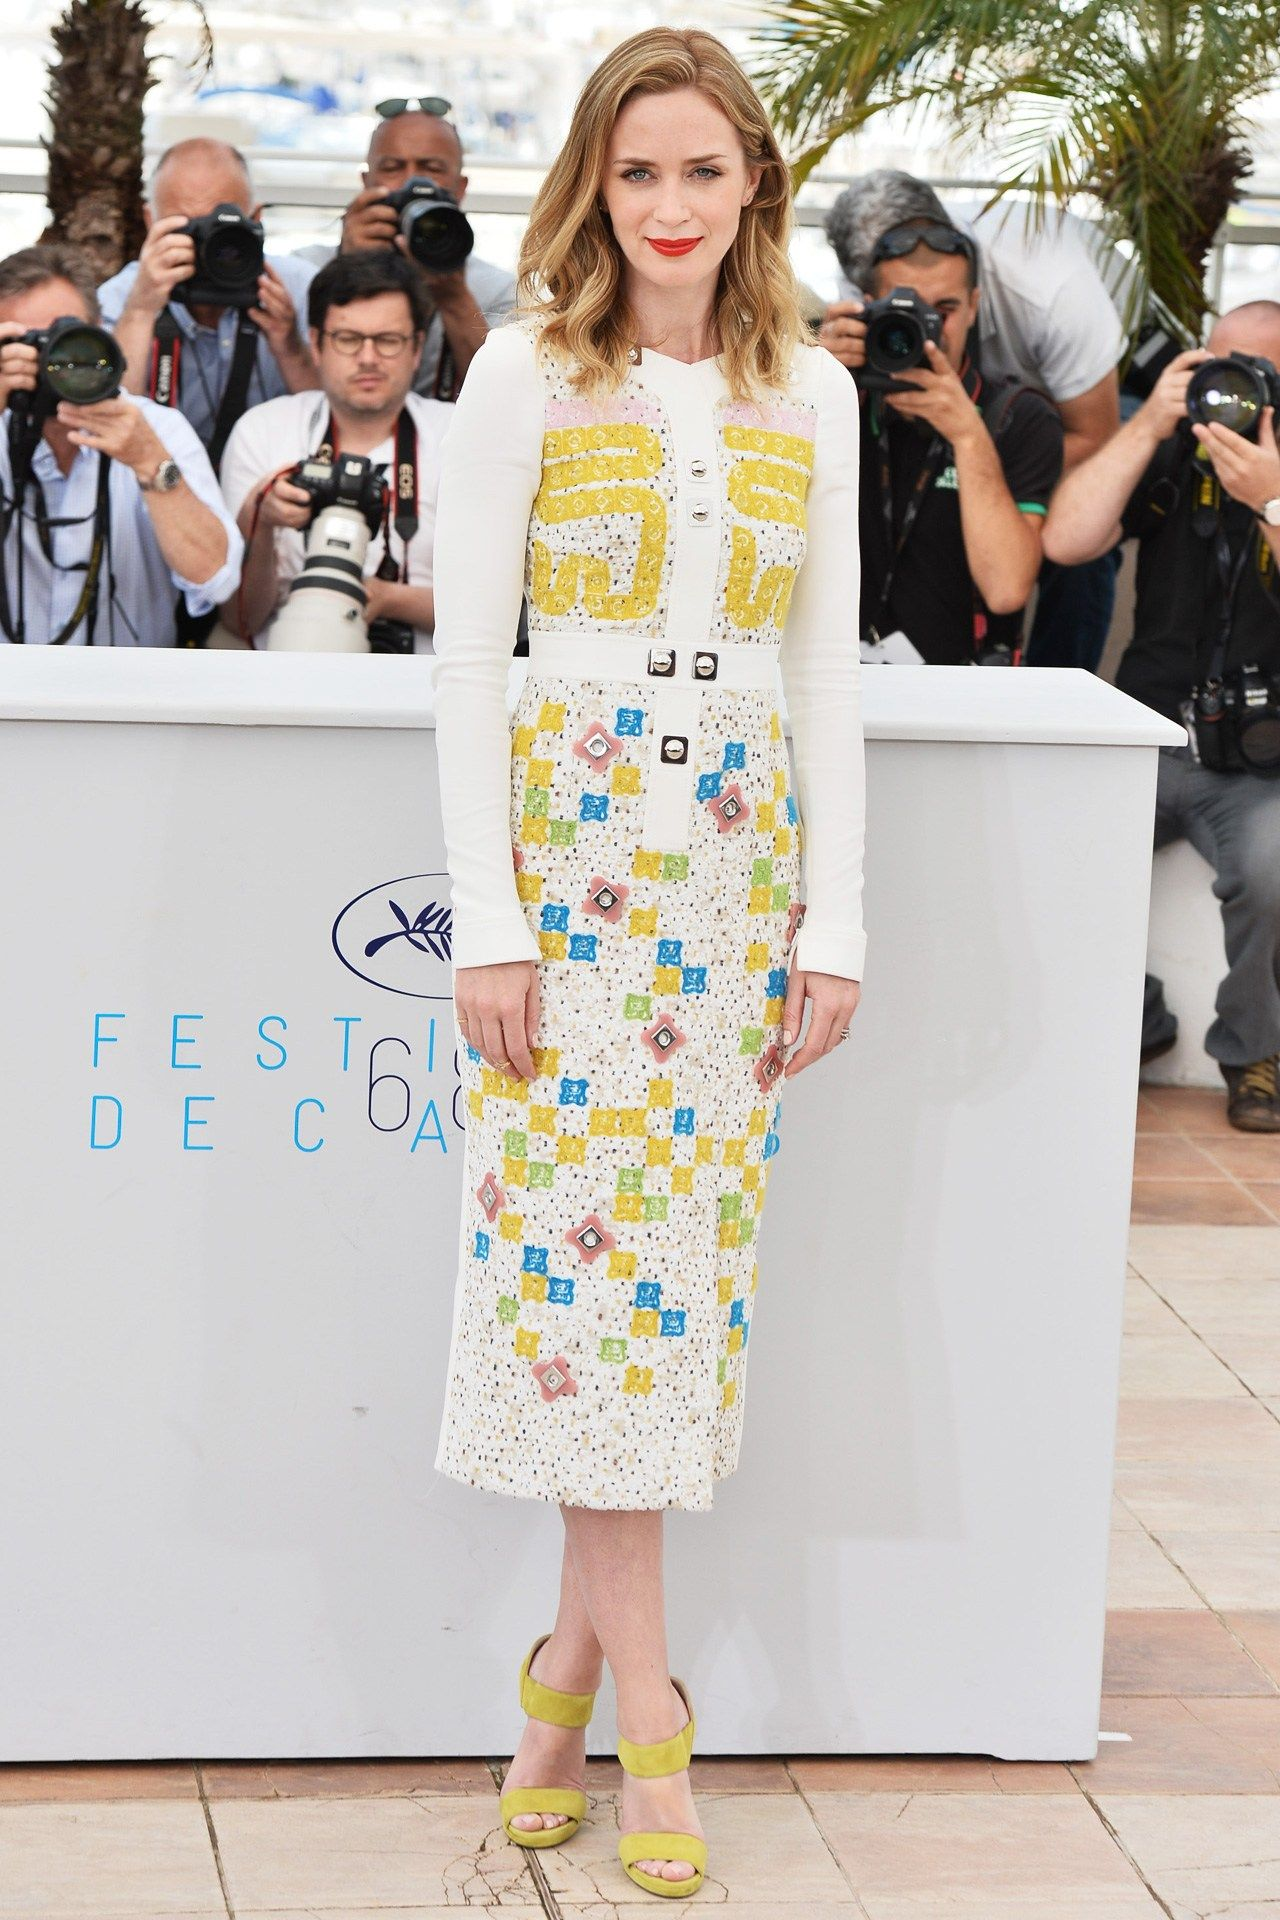 Cannes Film Festival - Emily Blunt in a Peter Pilotto dress. Click through for the full gallery